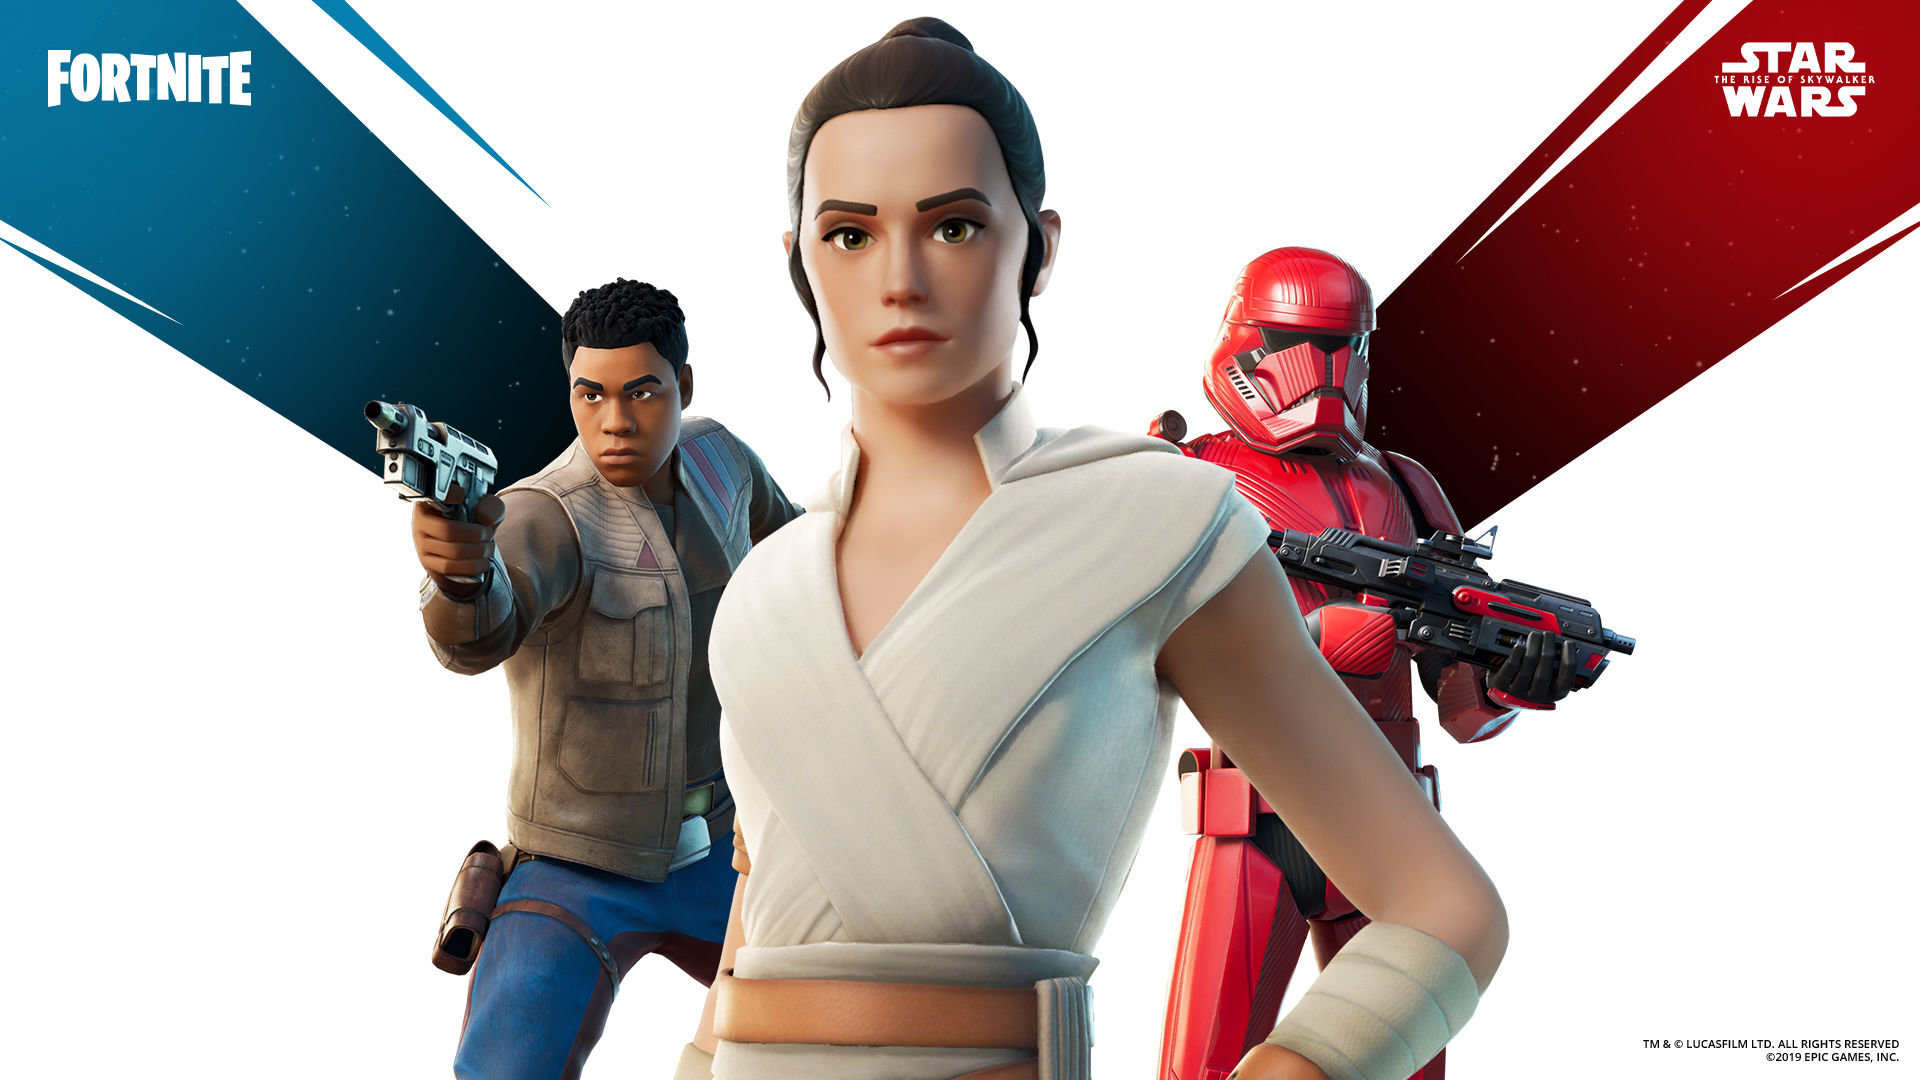 Here S Every Fortnite Star Wars Skin And Cosmetic You Can Get In The New Rise Of Skywalker Crossover Gamesradar Use our latest free fortnite skins generator to get the ice king, trog, sgt. here s every fortnite star wars skin